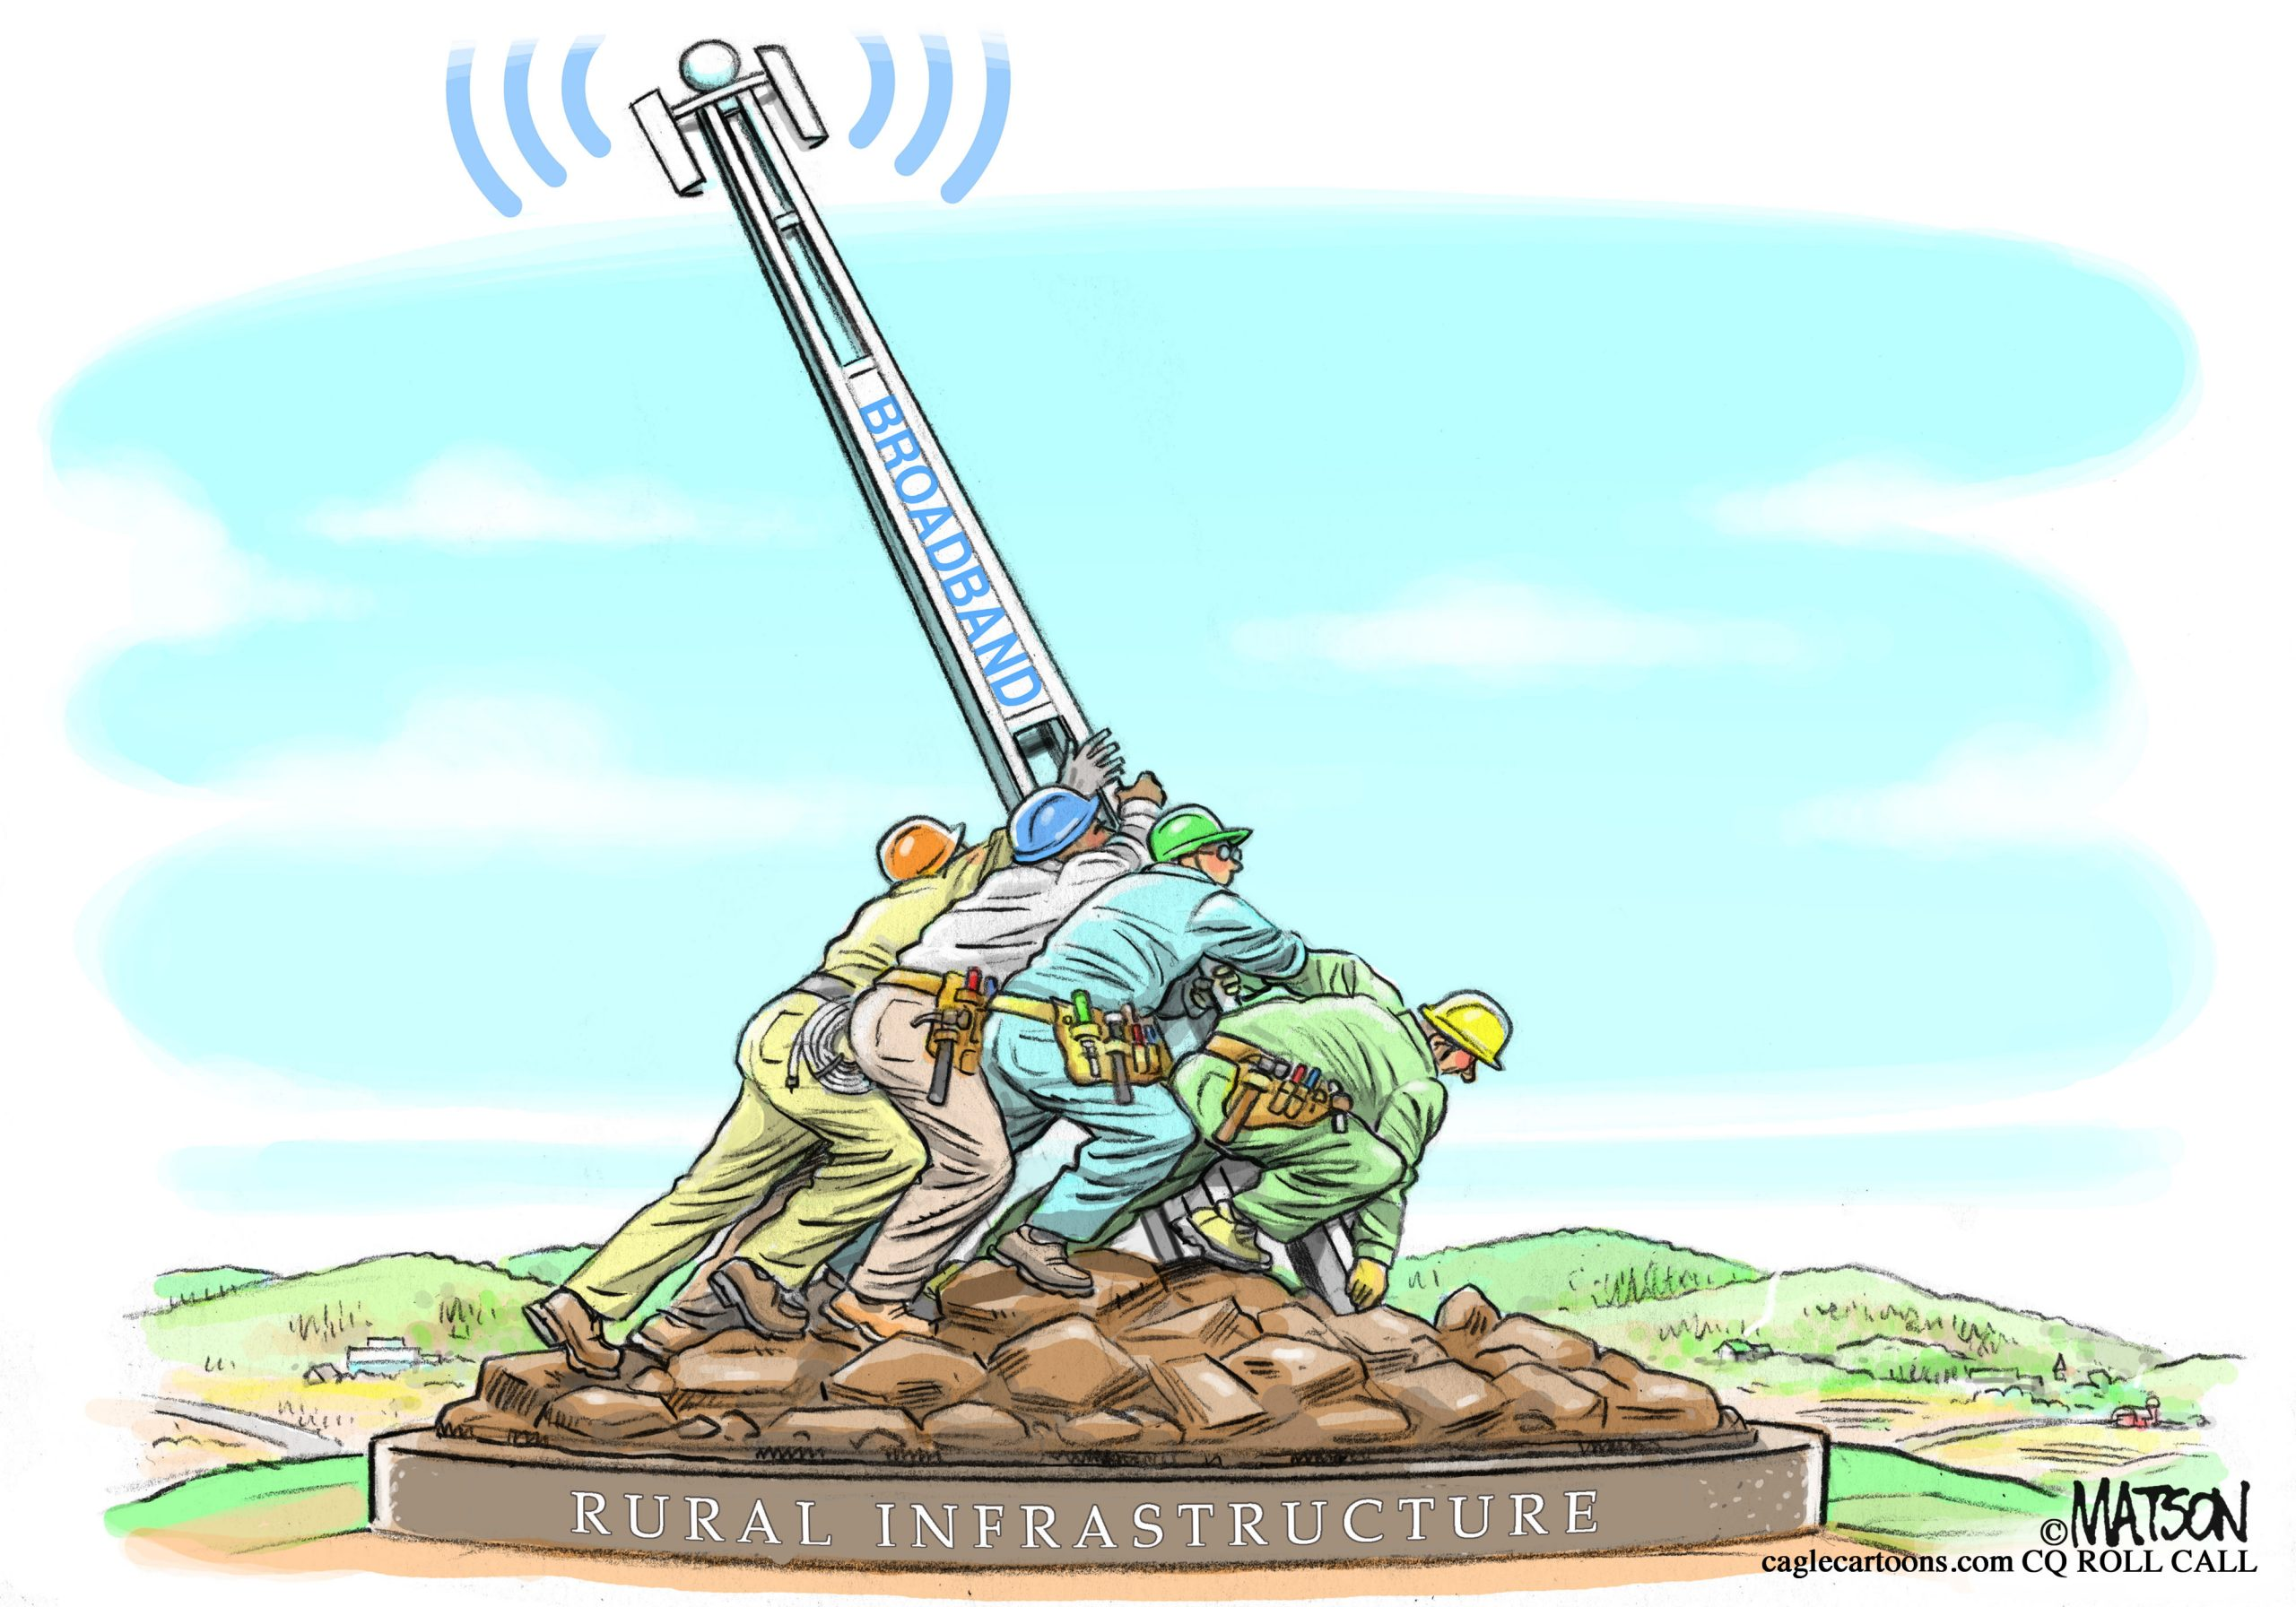 R.J. Matson - NATIONAL Rural Broadband